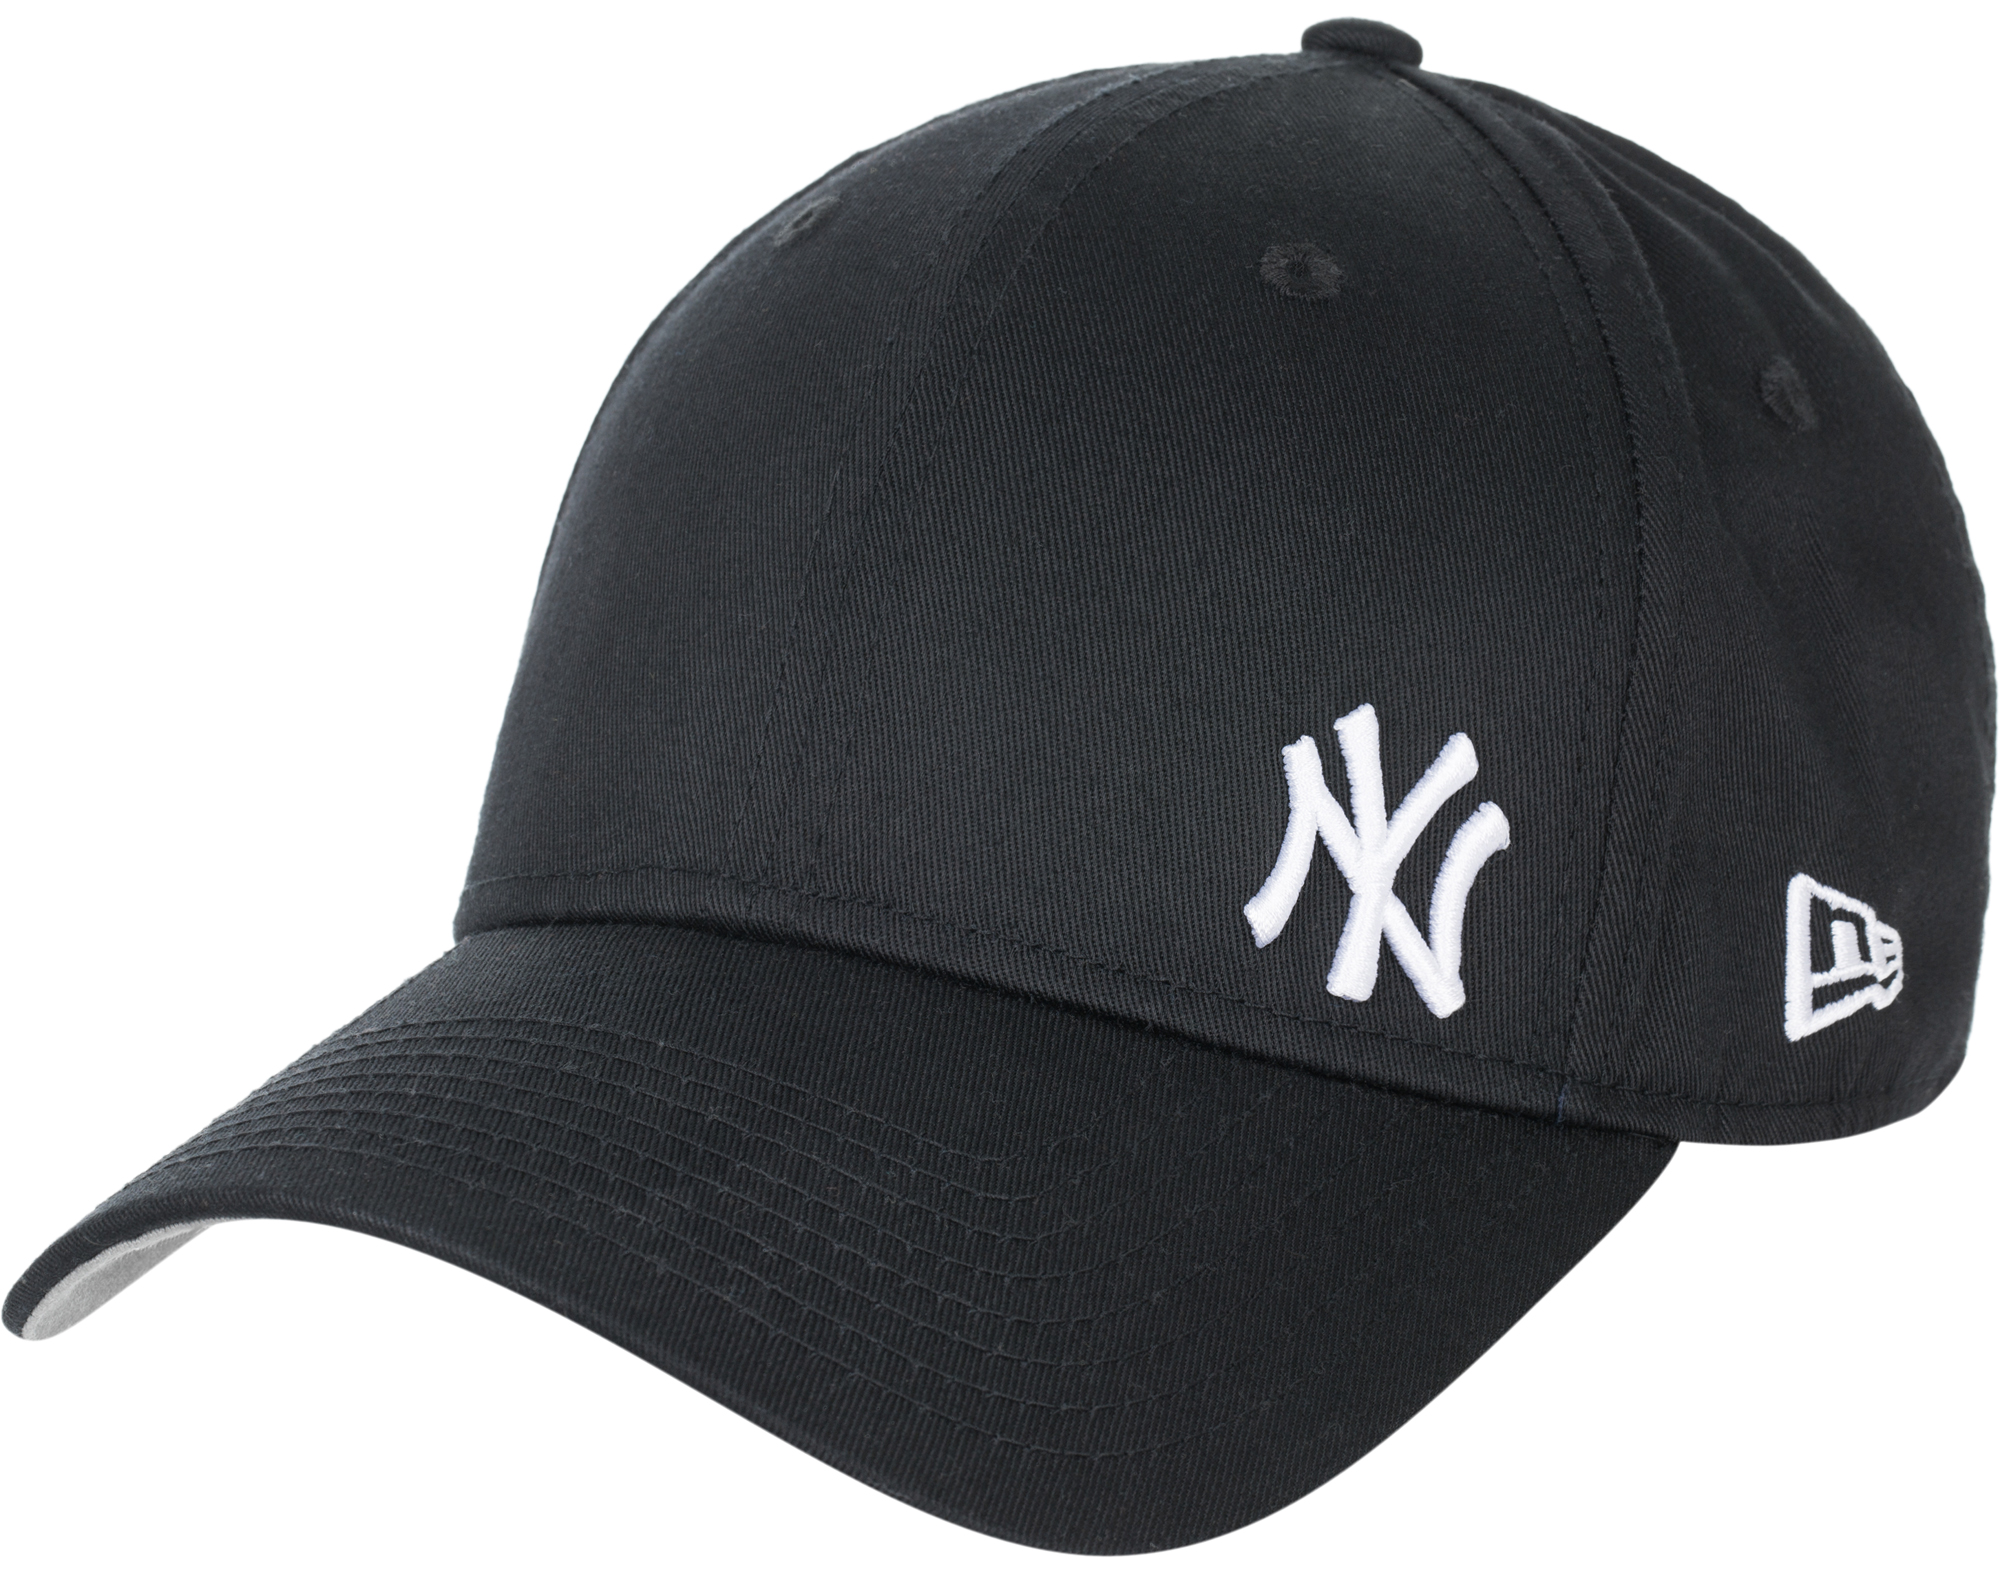 New Era Бейсболка New Era Sm 940 Flawless Basic majorleaguebaseball mlb new york yankees nyy home yankee stadium 3d puzzle model paper